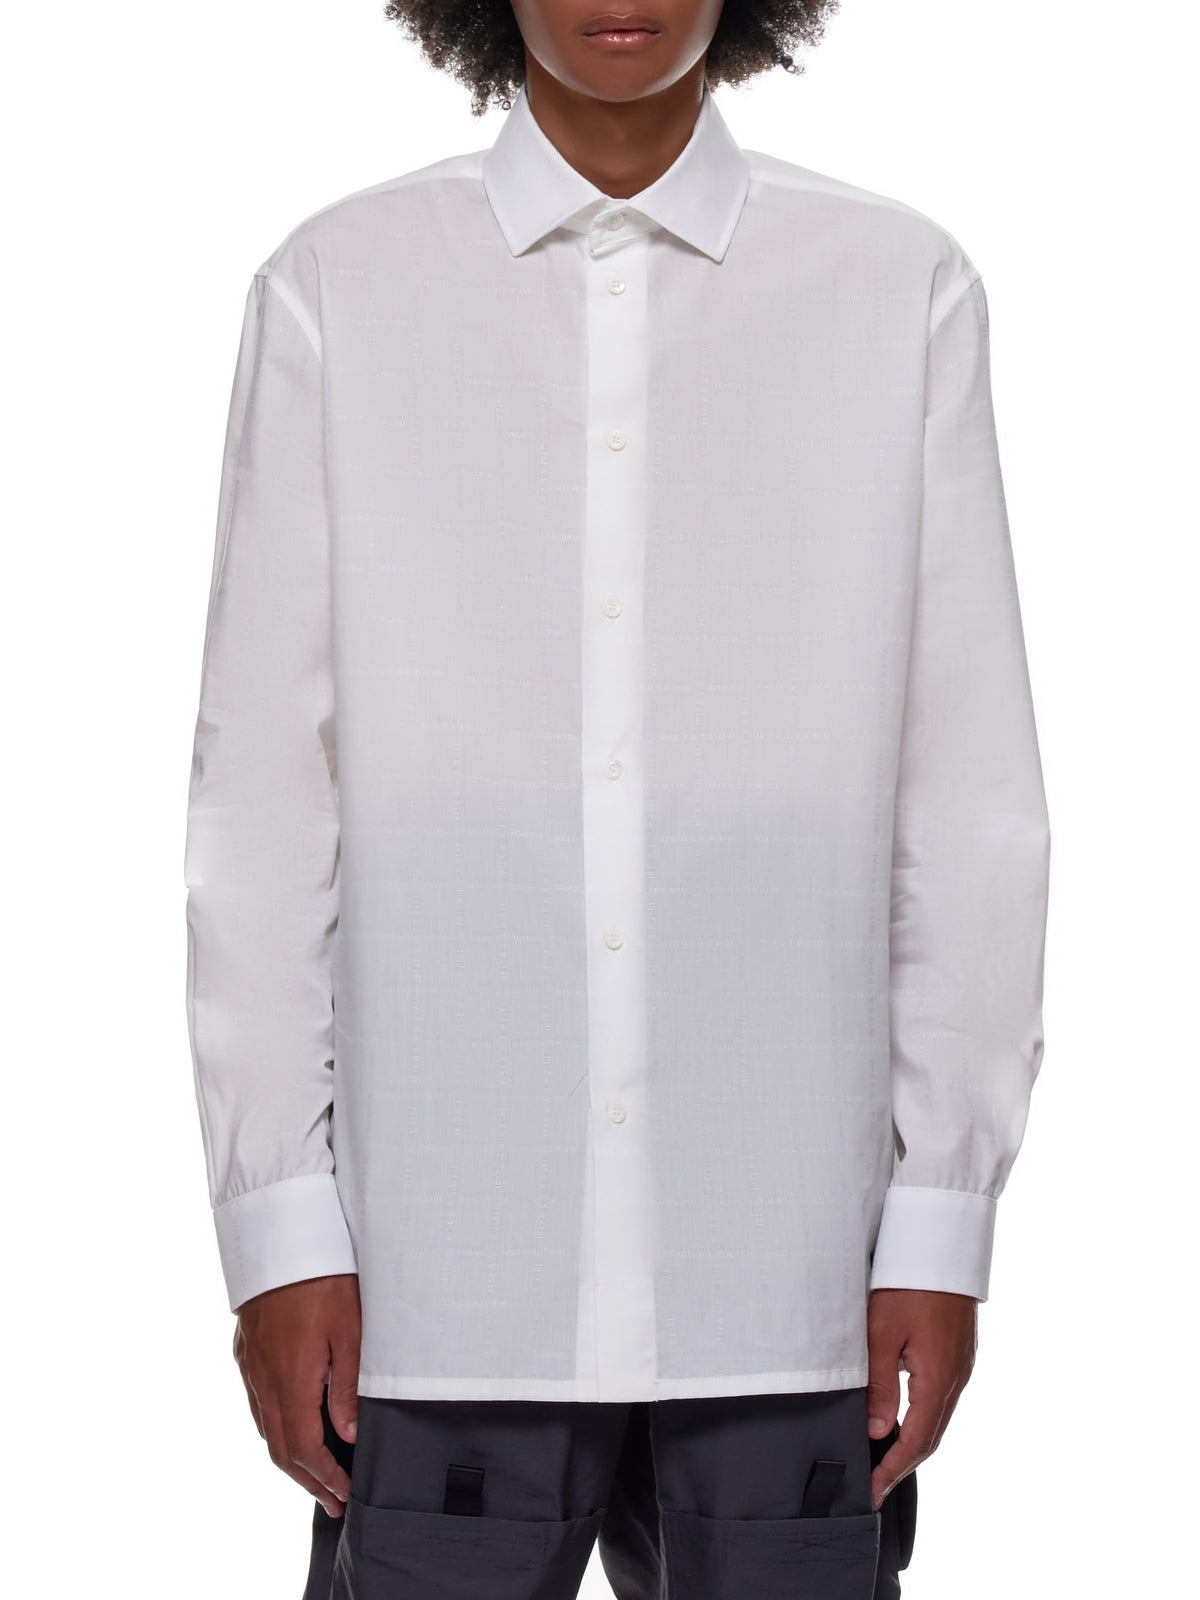 Embroidered Button Down Shirt (MSH0022FA06-WHITE)